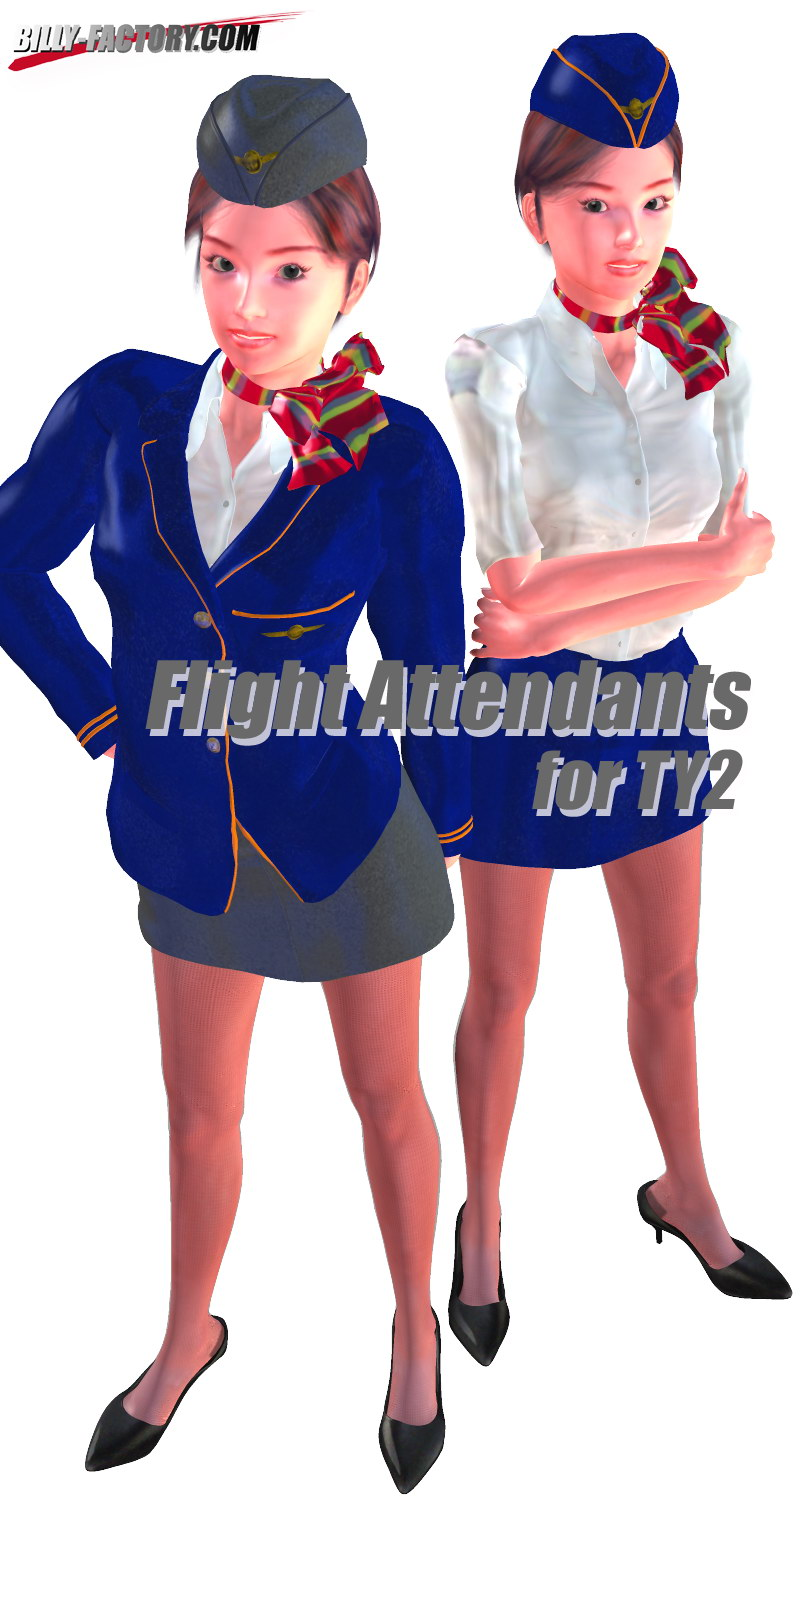 TY2 Flight Attendants